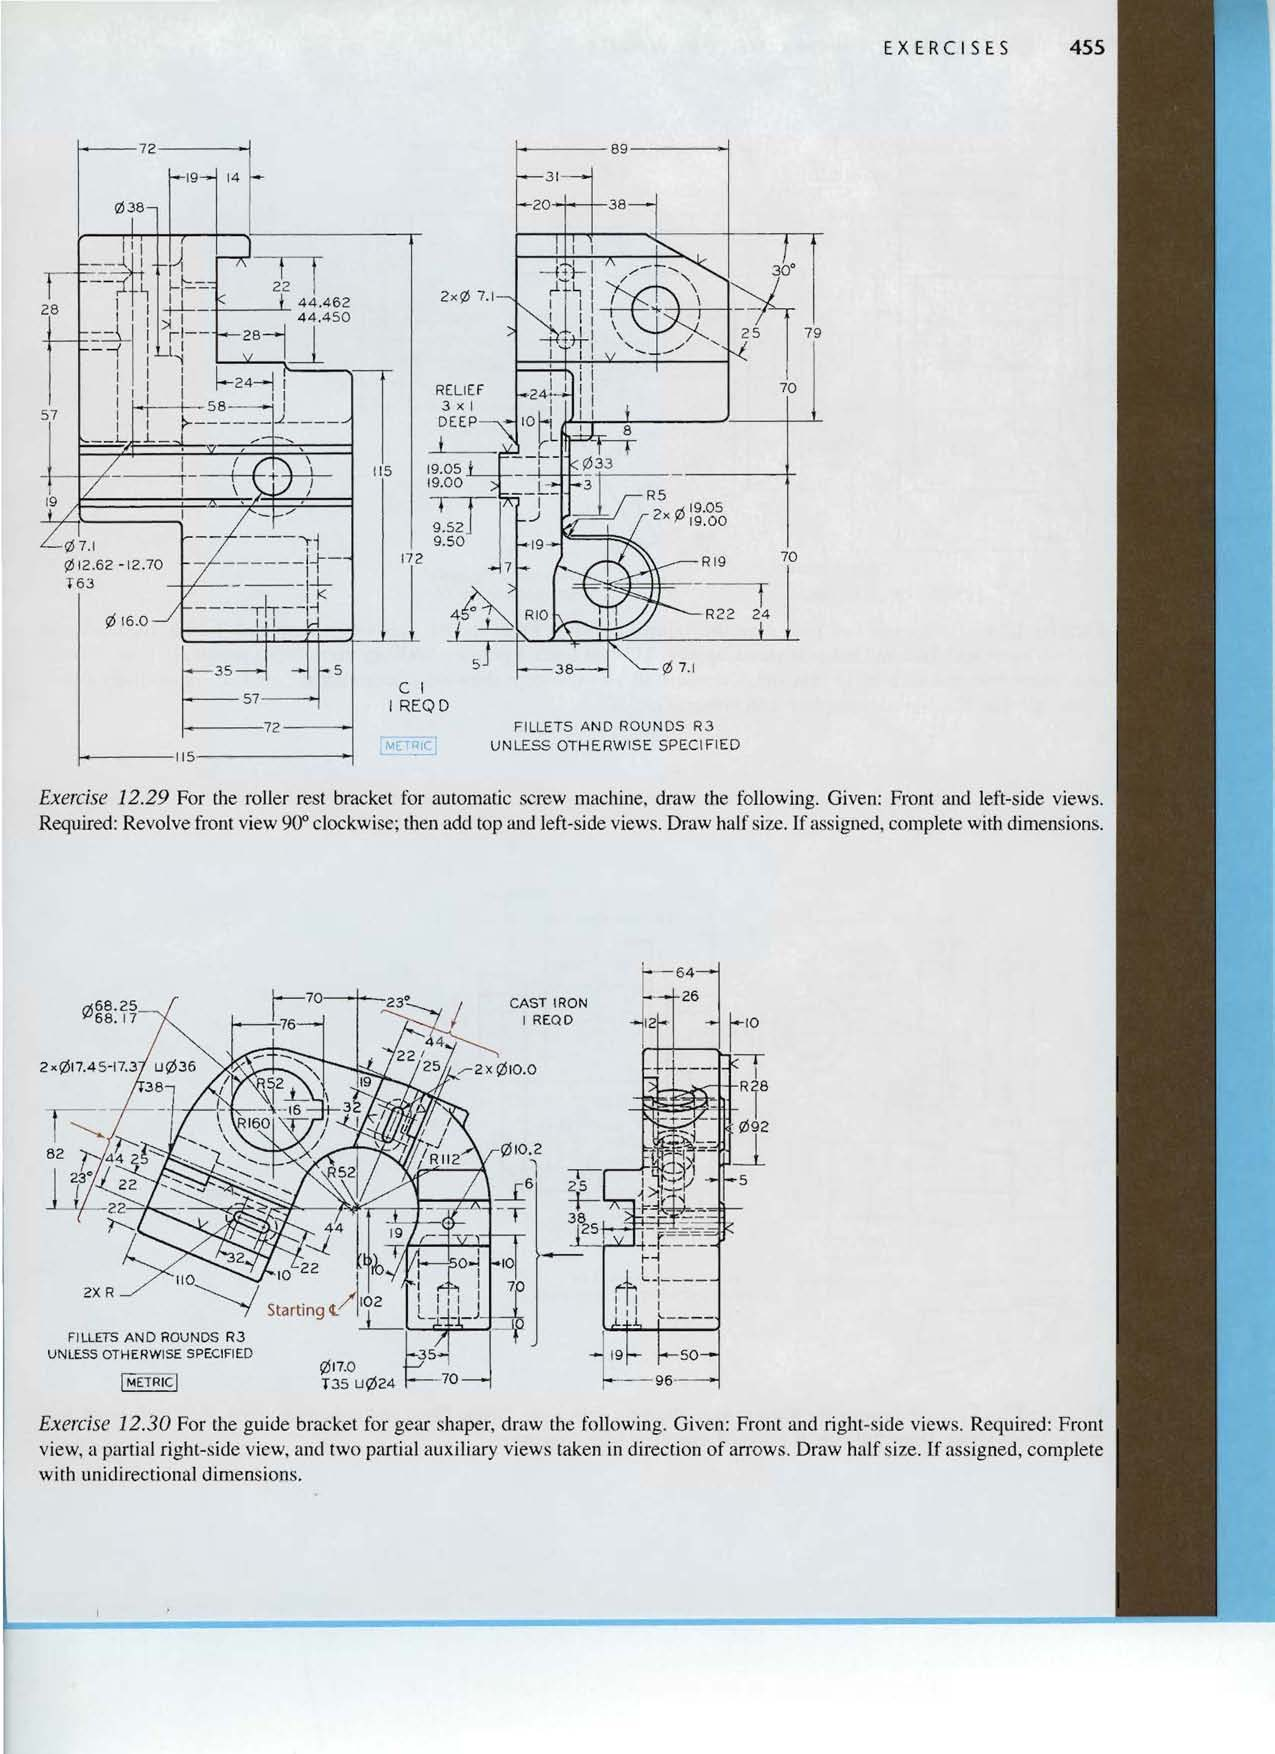 Chapter Twelve Working Drawings Objectives After Studying The T35 Wiring Diagram Ex Ere 5 E5 455 28 L 44462 44450 2a Tl 2x 71